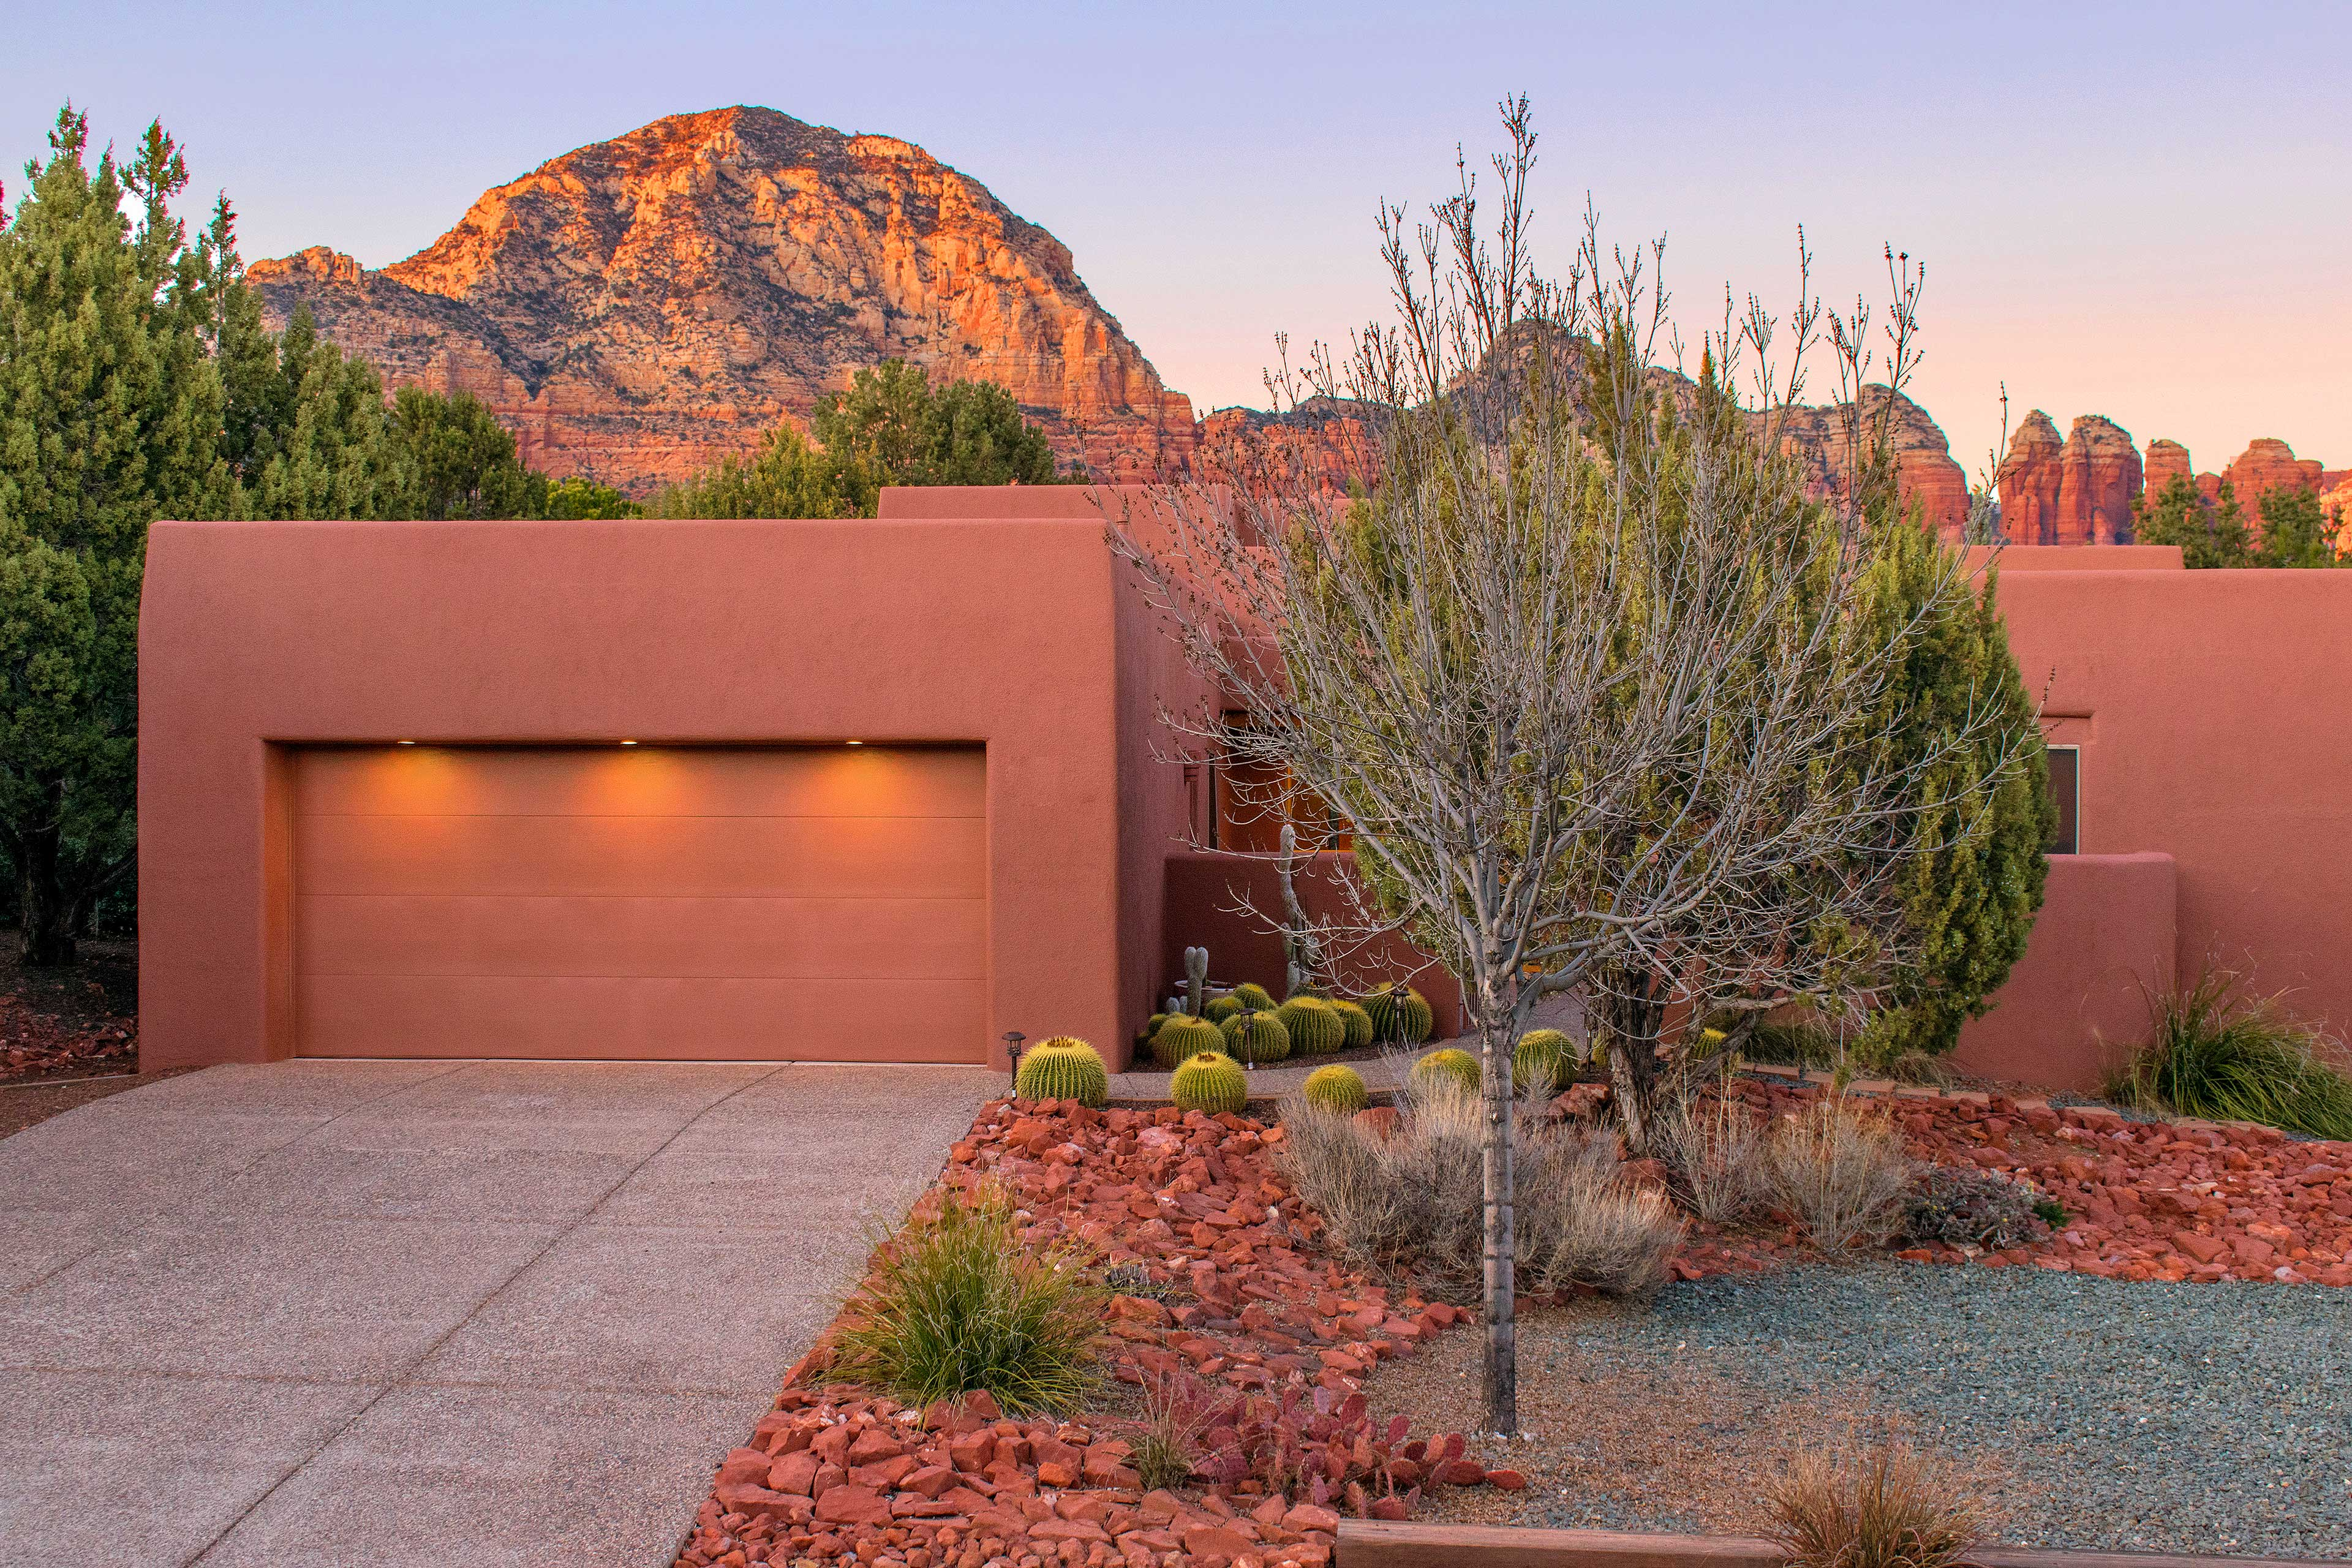 Follow the cacti to the front door of your Sedona home-away-from-home!